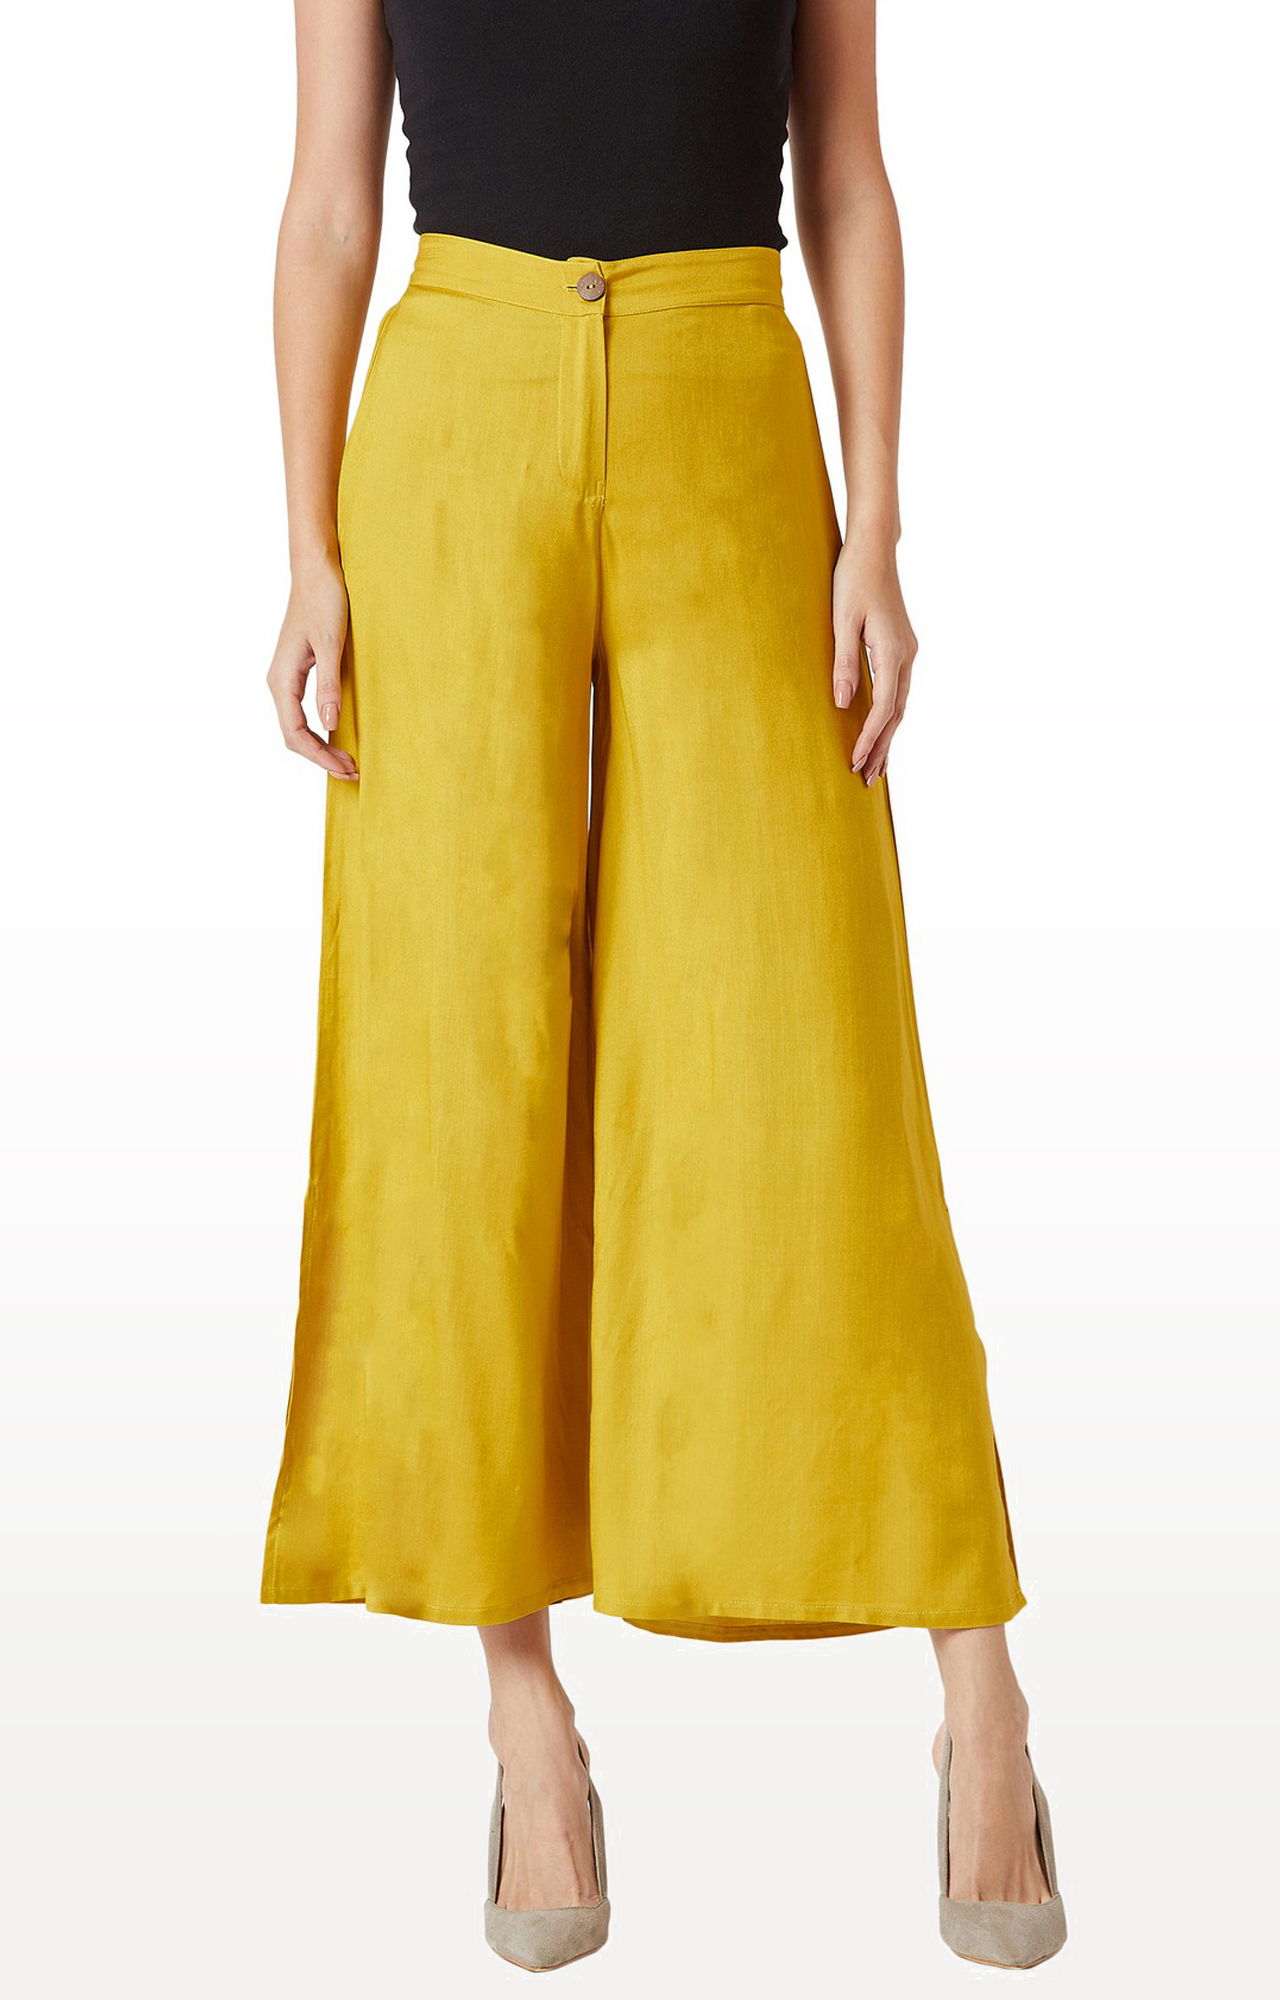 MISS CHASE | Mustard Solid Palazzos